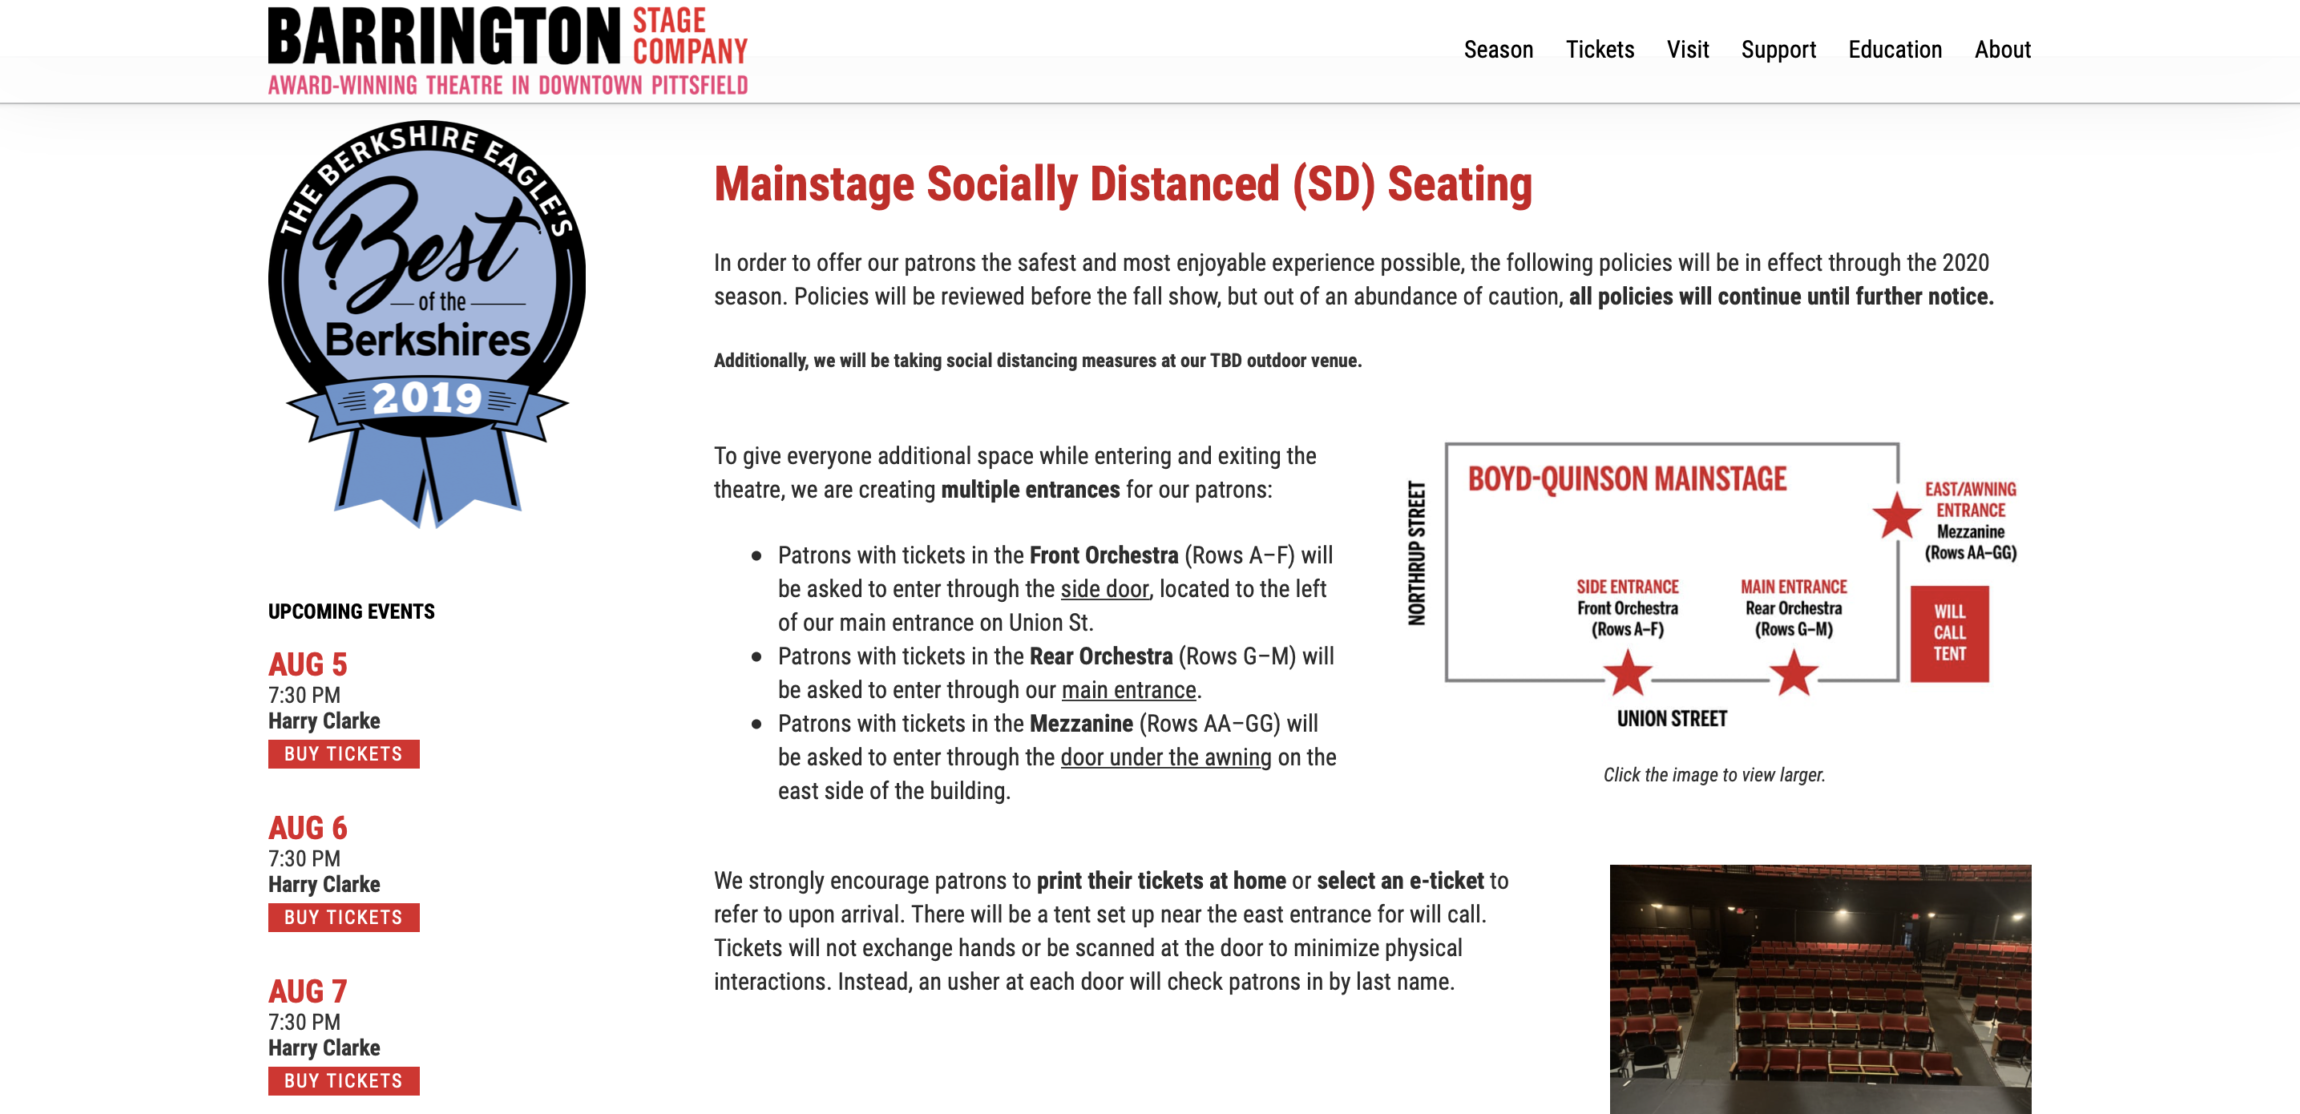 Screenshot showing the Barrington Stage Company social distancing page